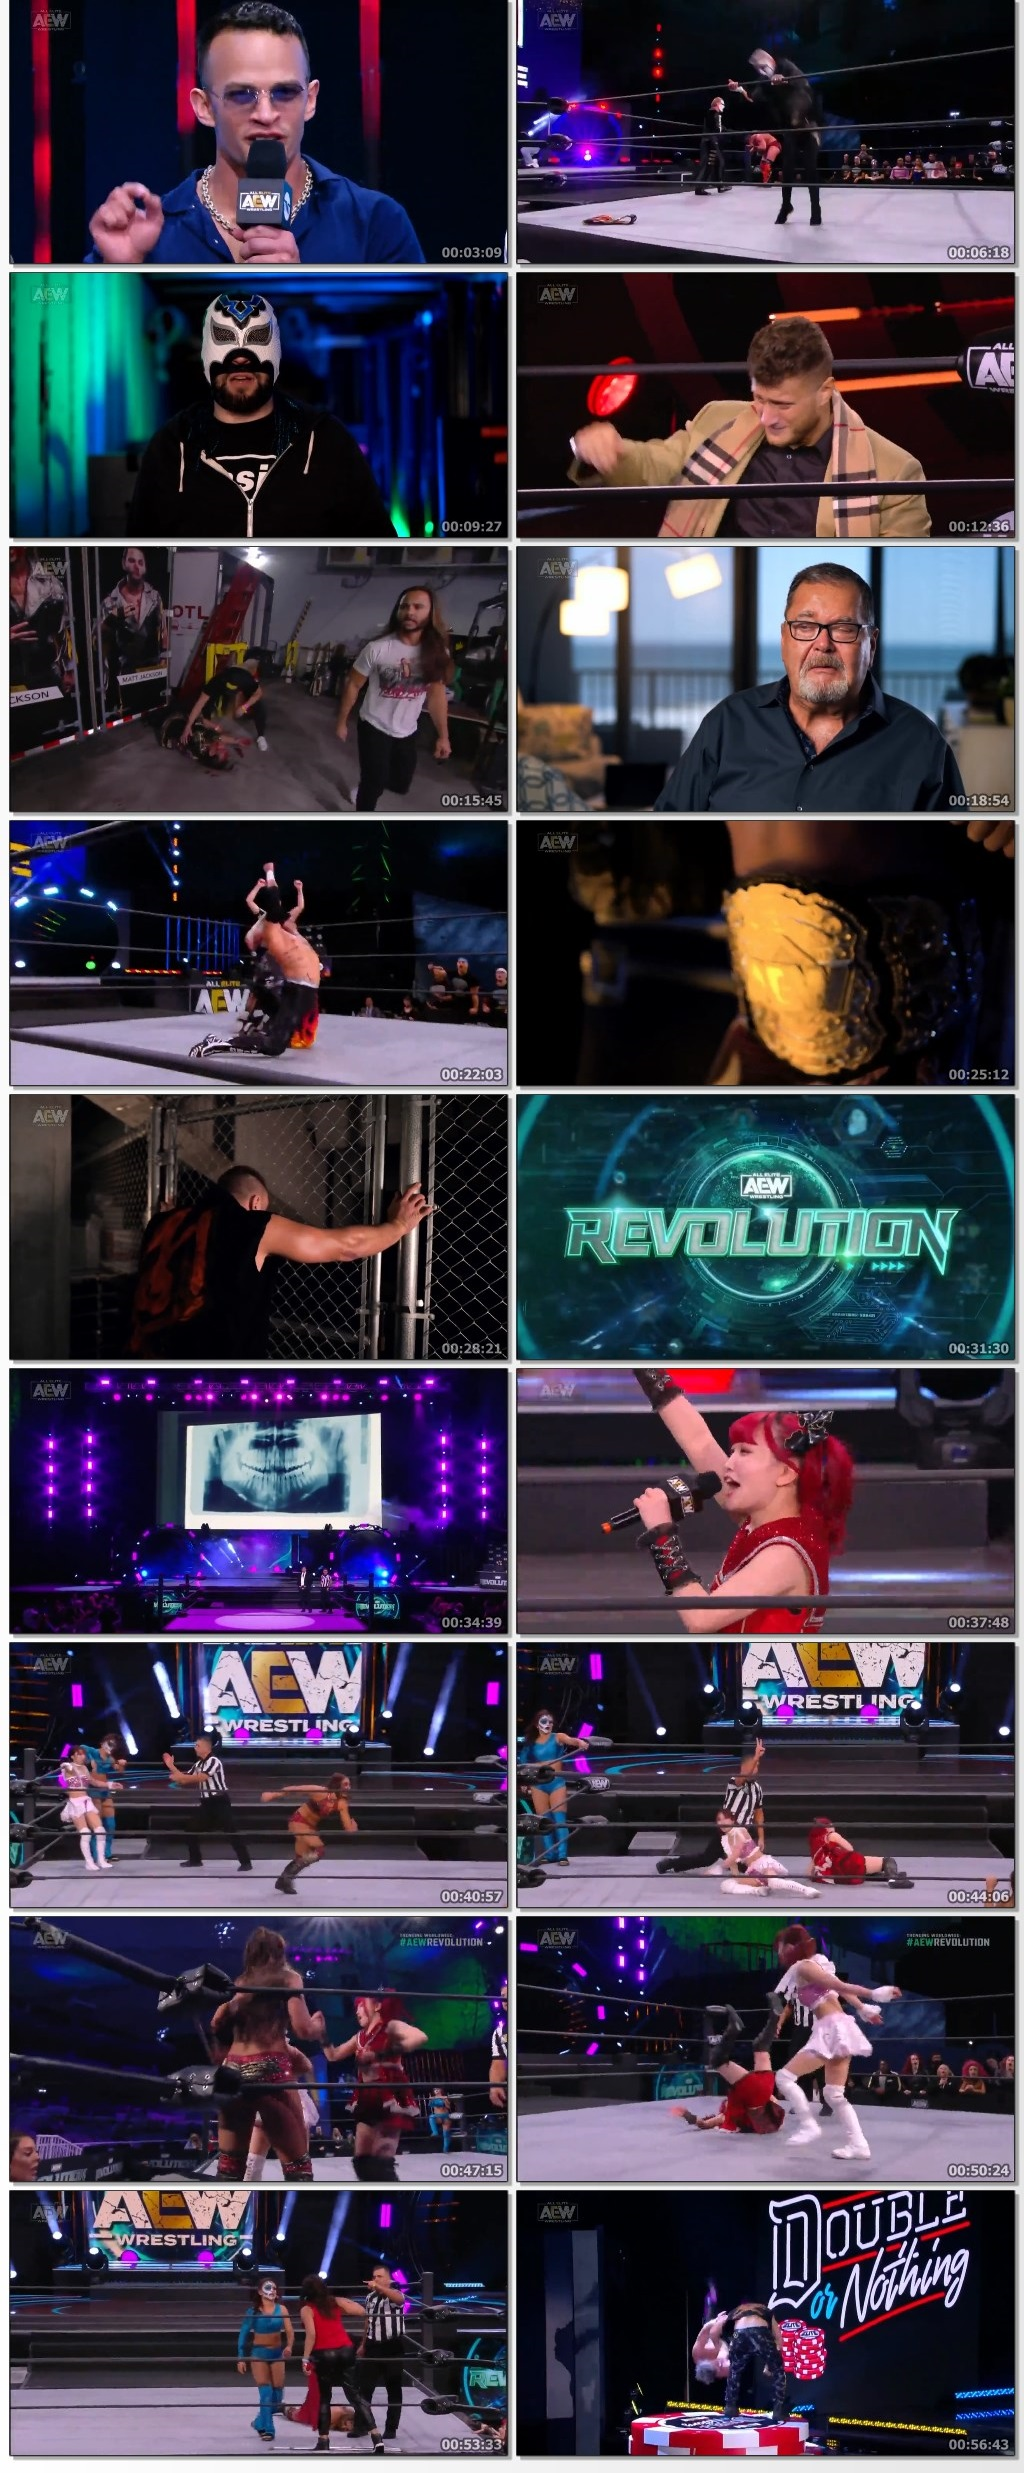 AEW-Revolution-2021-PPV-720p-HDTV-www-7-Star-HD-Team-Encoded-mkv-thumbs